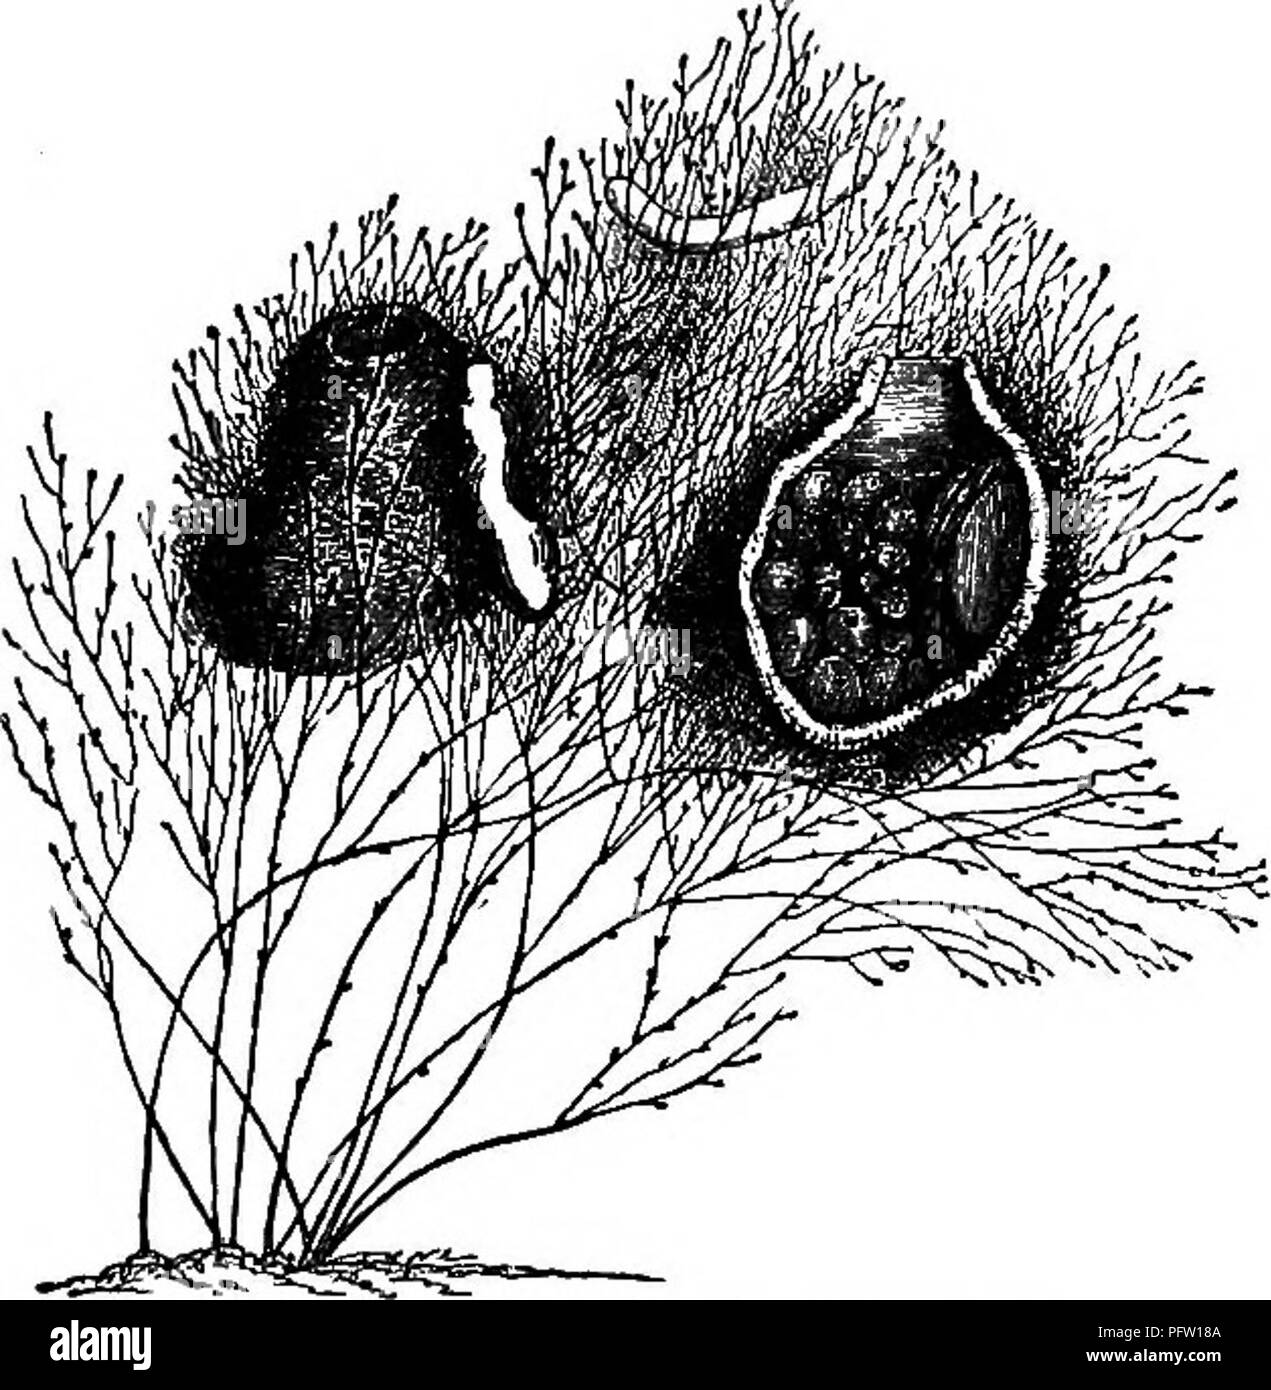 . Life of a Scotch naturalist: Thomas Edward, associate of the Linnaean Society. CHAP. xv.J Nest-lndlMng Crustacea. 275 could the Podocerus capillatus do for his family? Noth- ing whatever! His entire labors were gratuitous. Prop- erly speaking, naturalists should be gentlemen of independ- ent fortune. At all events, they should have some profes- sion to live by; while Edward had nothing but Ms wretch- edly paid trade of shoe-making. The wonder is, that, with all his illnesses, arising for the most part from the results of exposure, he should have done so much, and continued his self-sacrifici - Stock Image